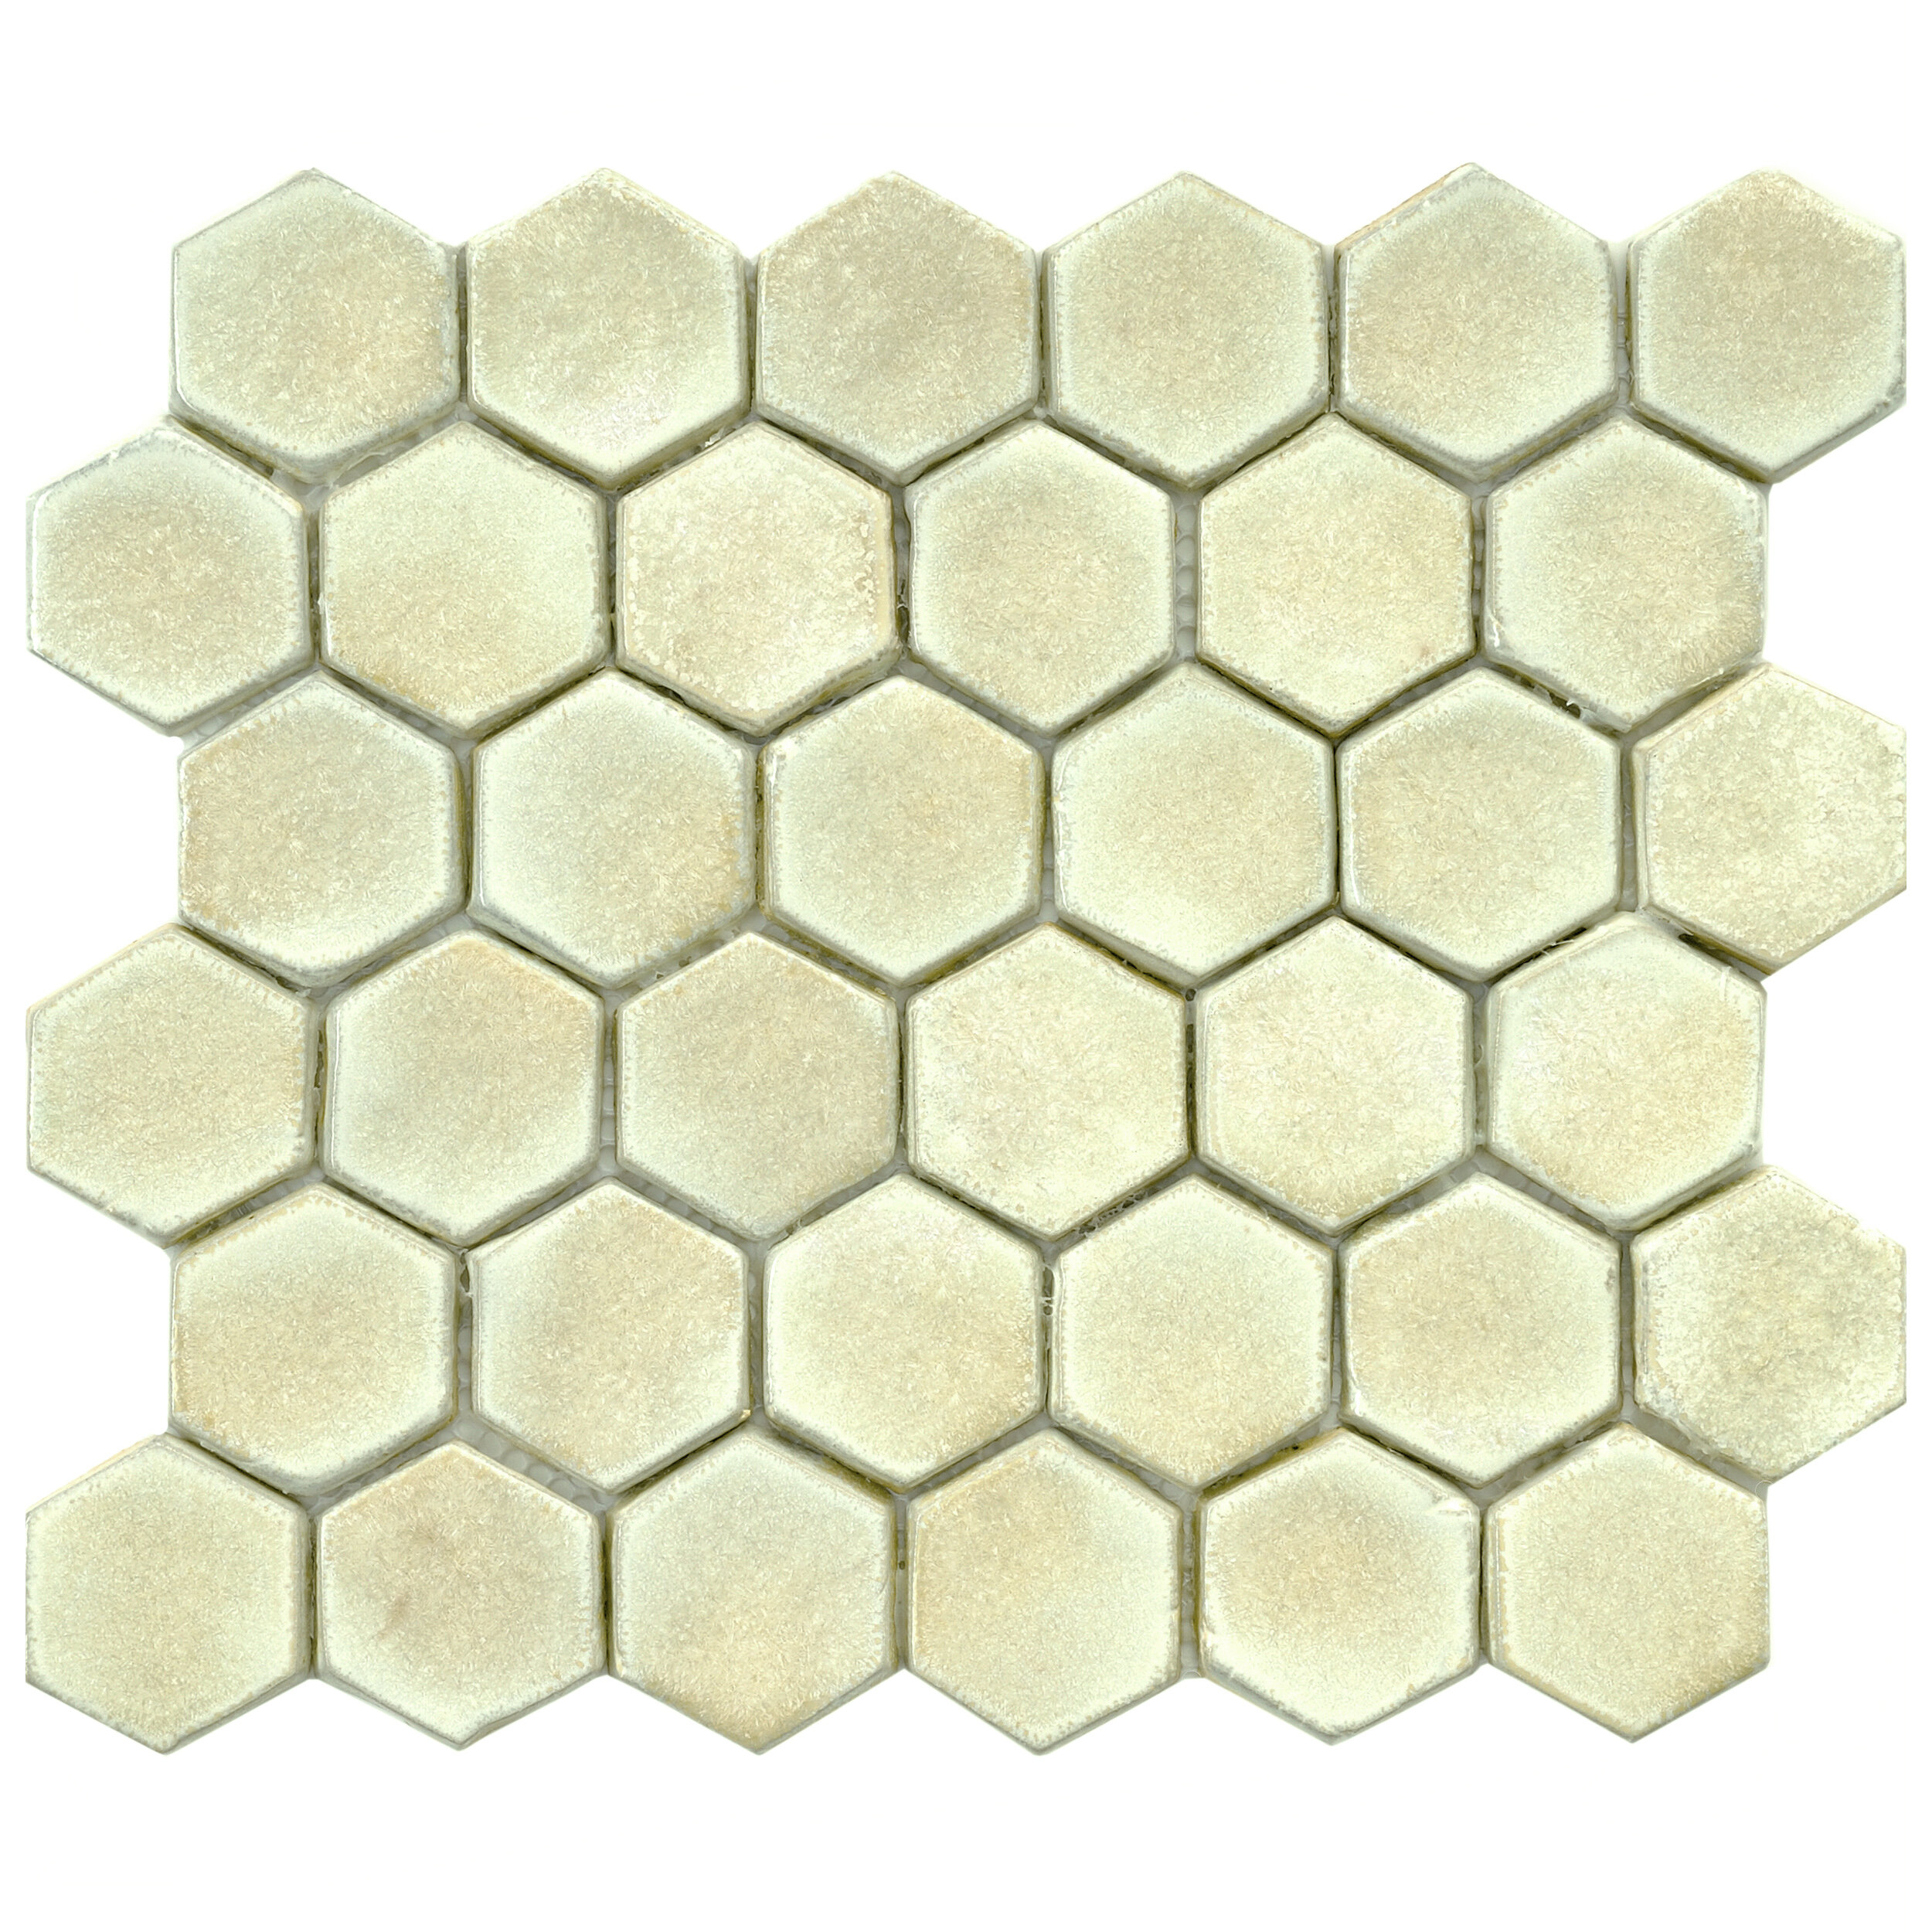 Elitetile greenwich hex 188 x 188 ceramic mosaic tile in off elitetile greenwich hex 188 x 188 ceramic mosaic tile in off white wayfair dailygadgetfo Gallery